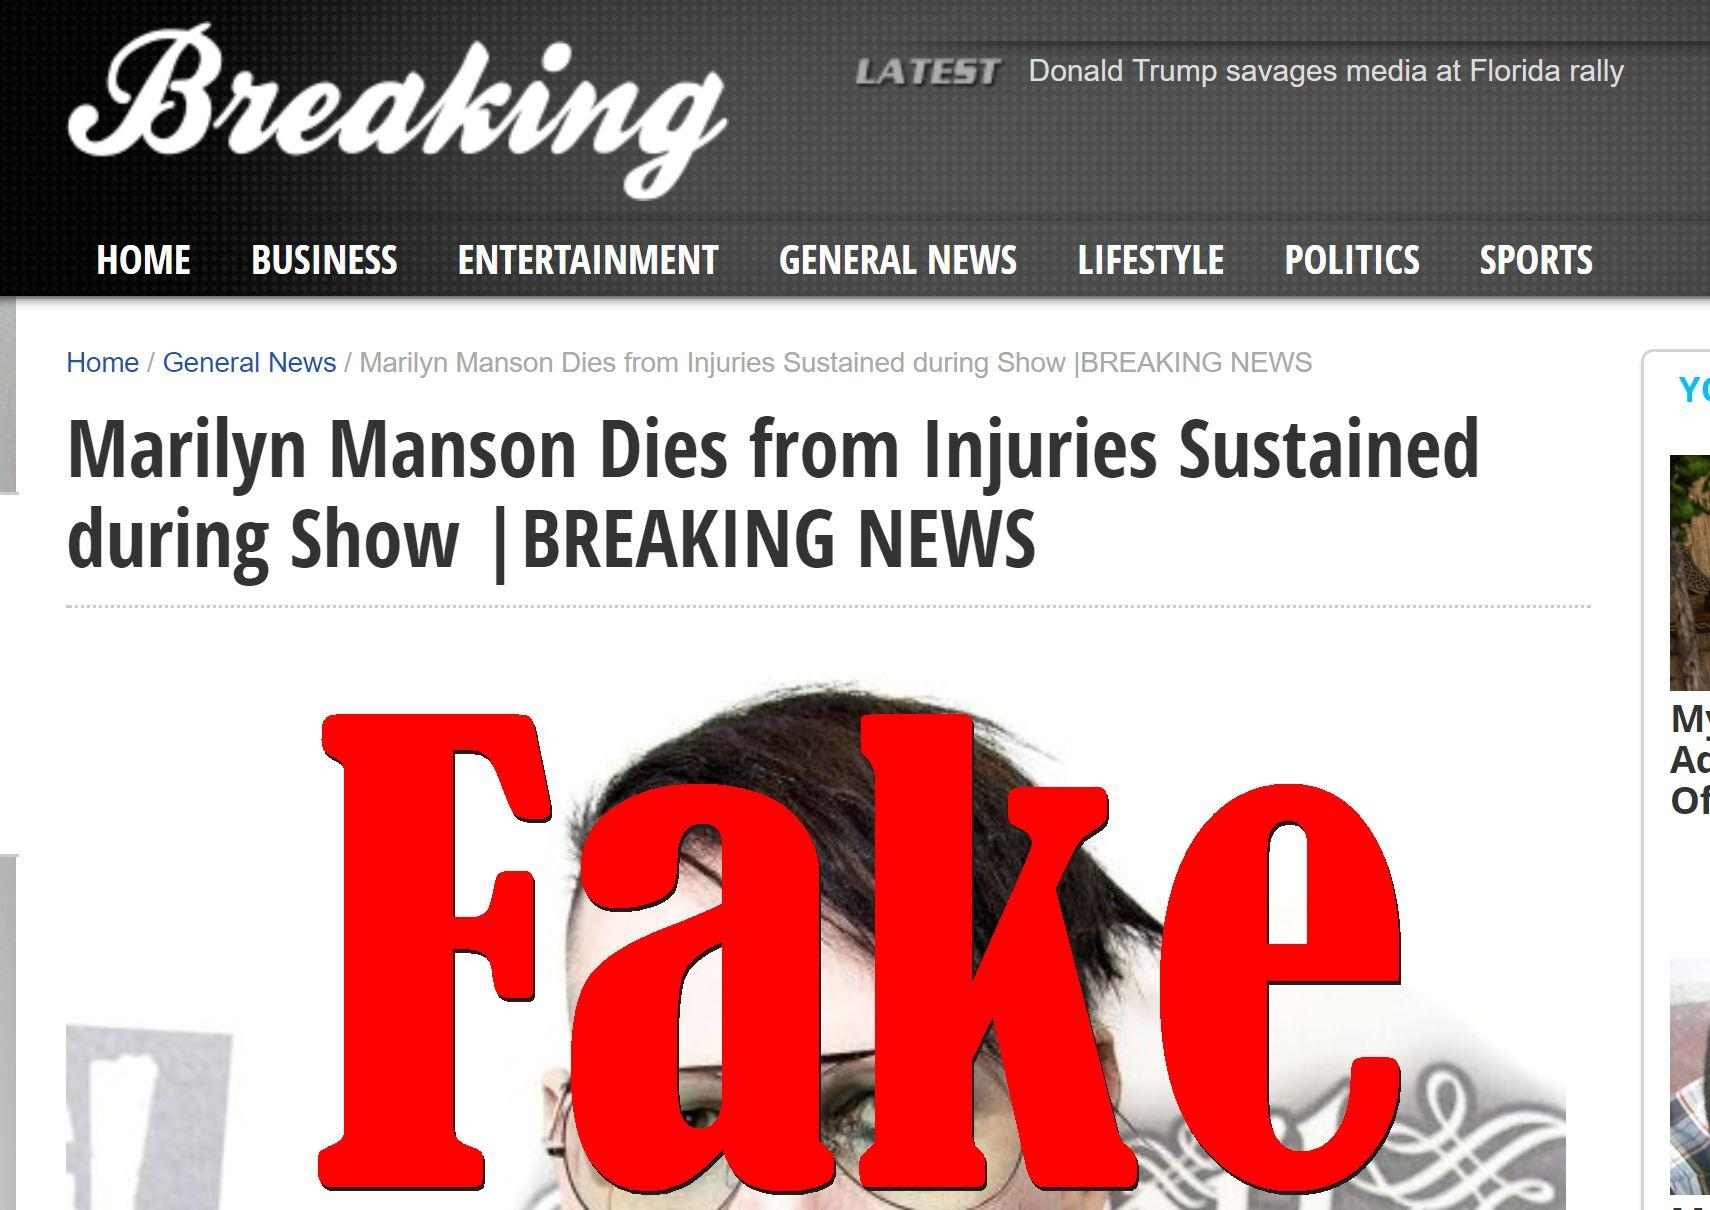 Fake News: Marilyn Manson Did NOT Die From Injuries Sustained during Show